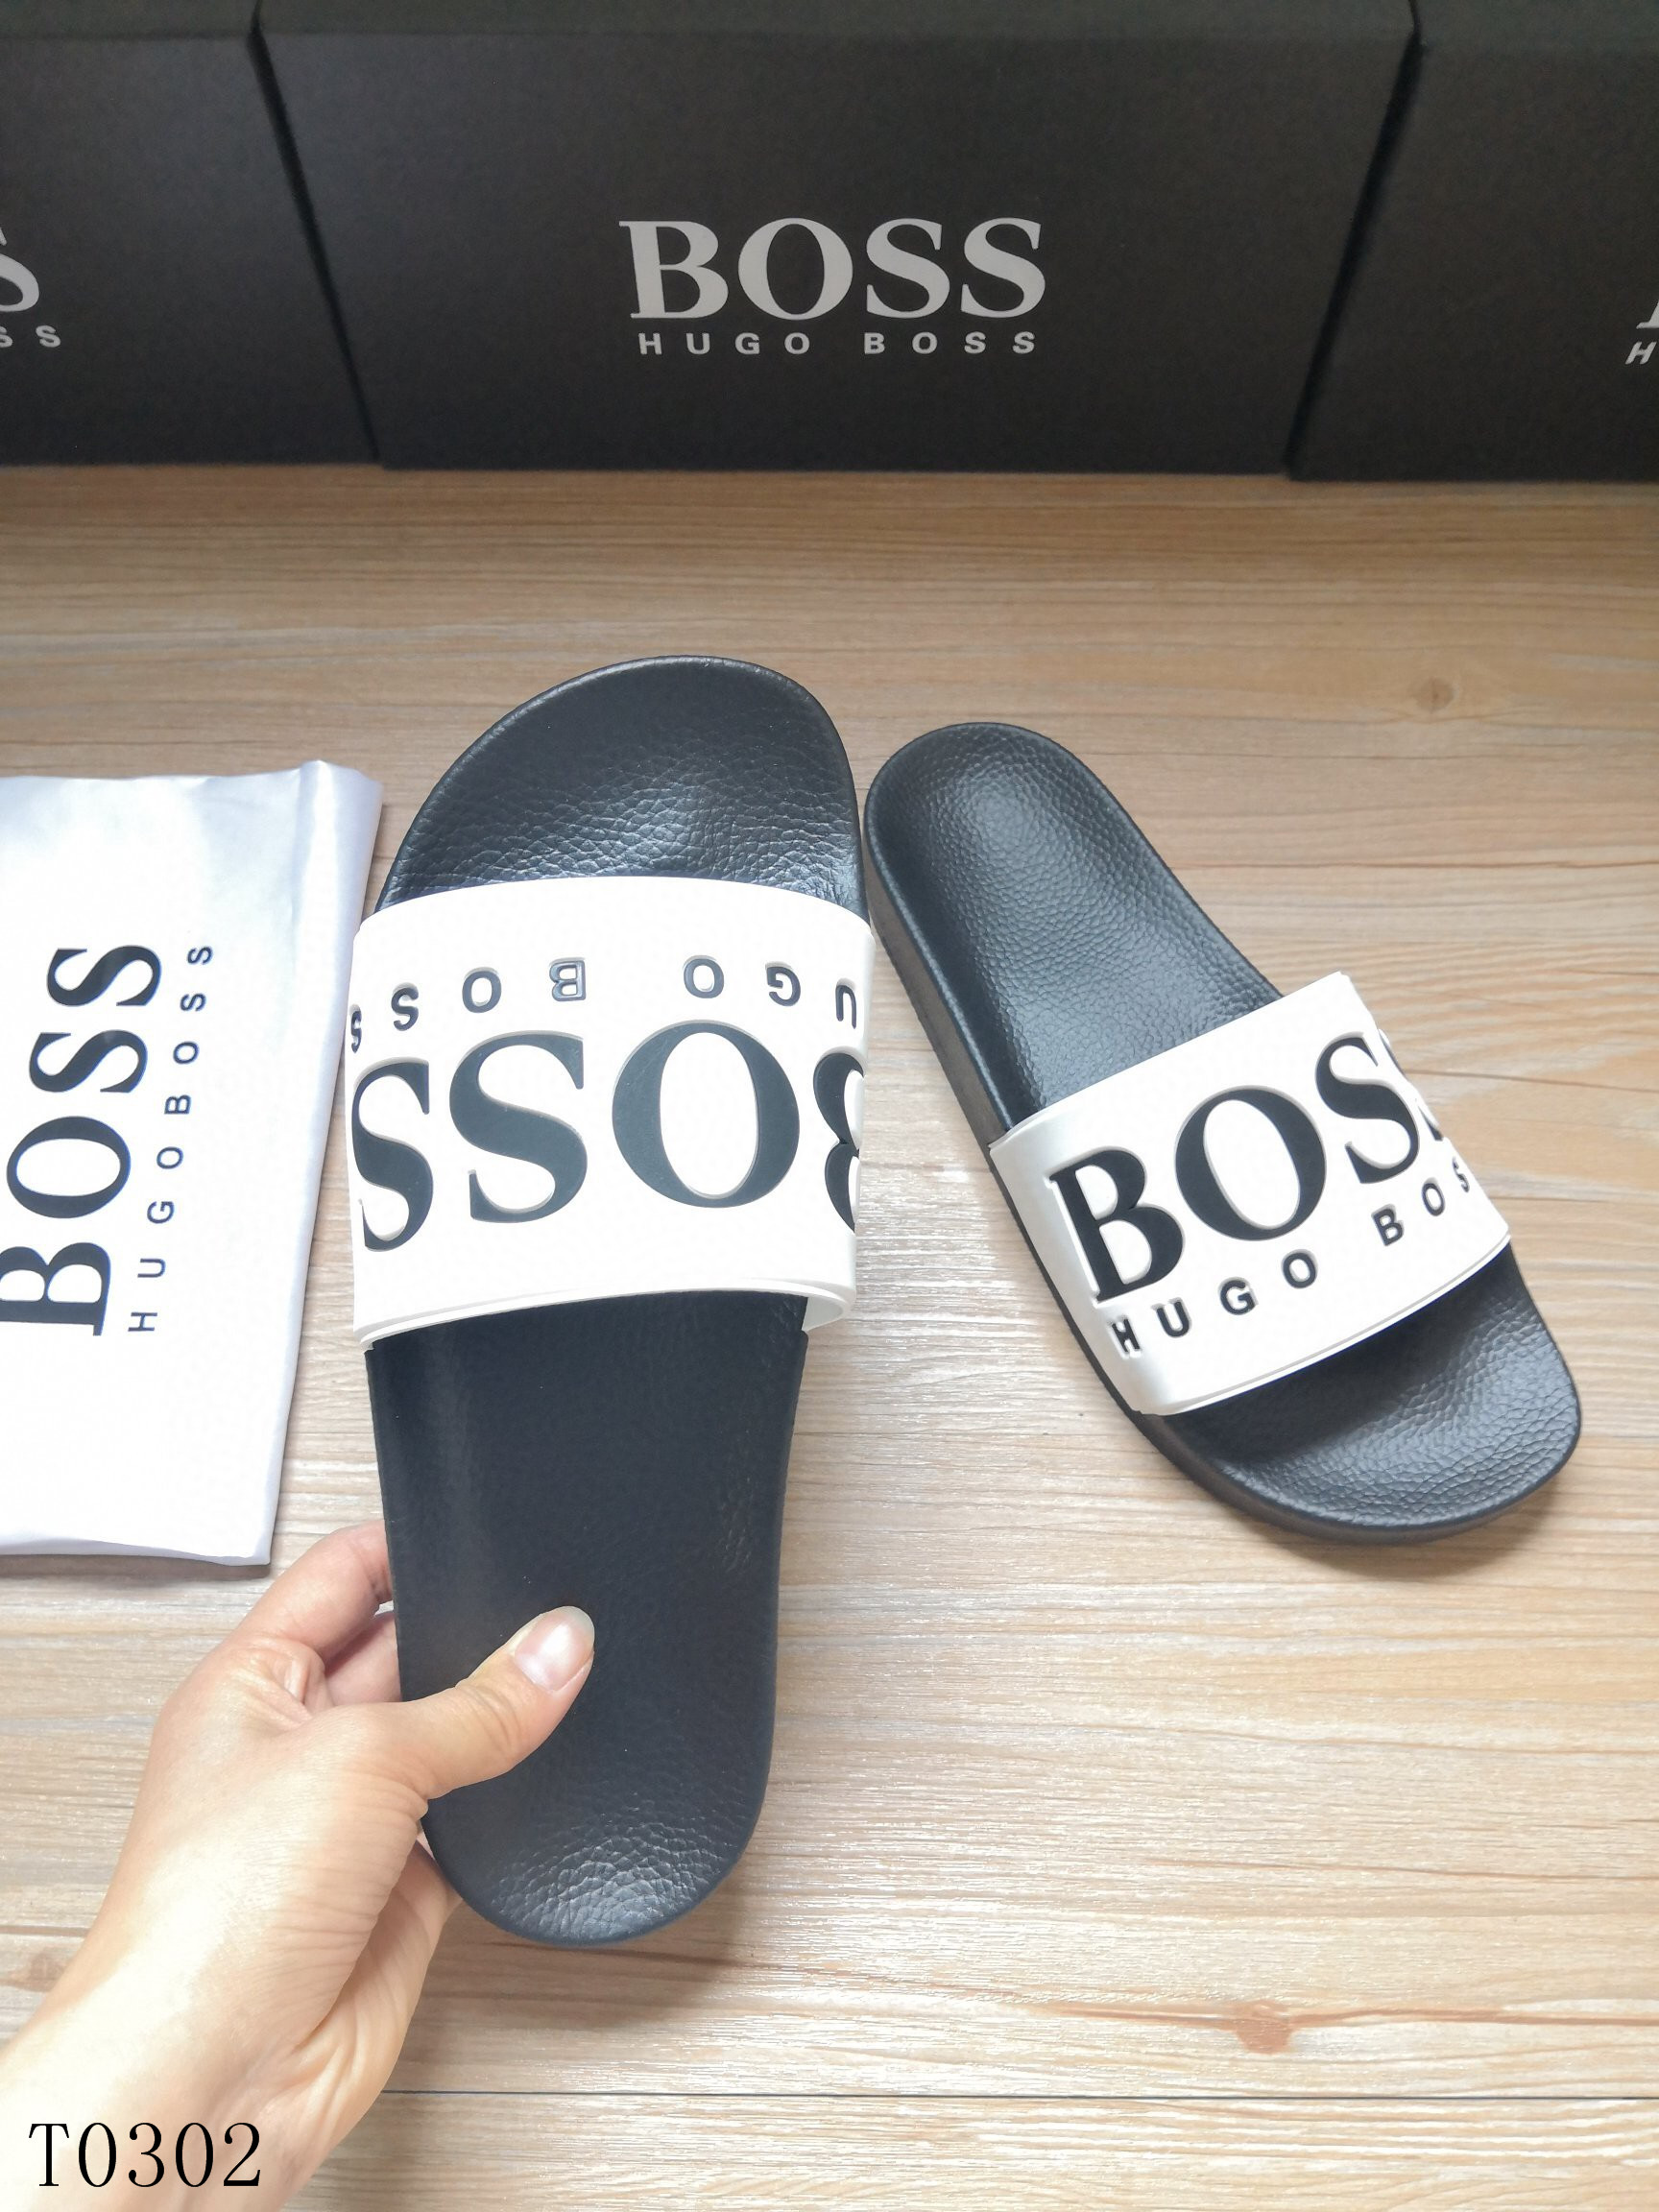 Hugo Boss Women's Slippers 03